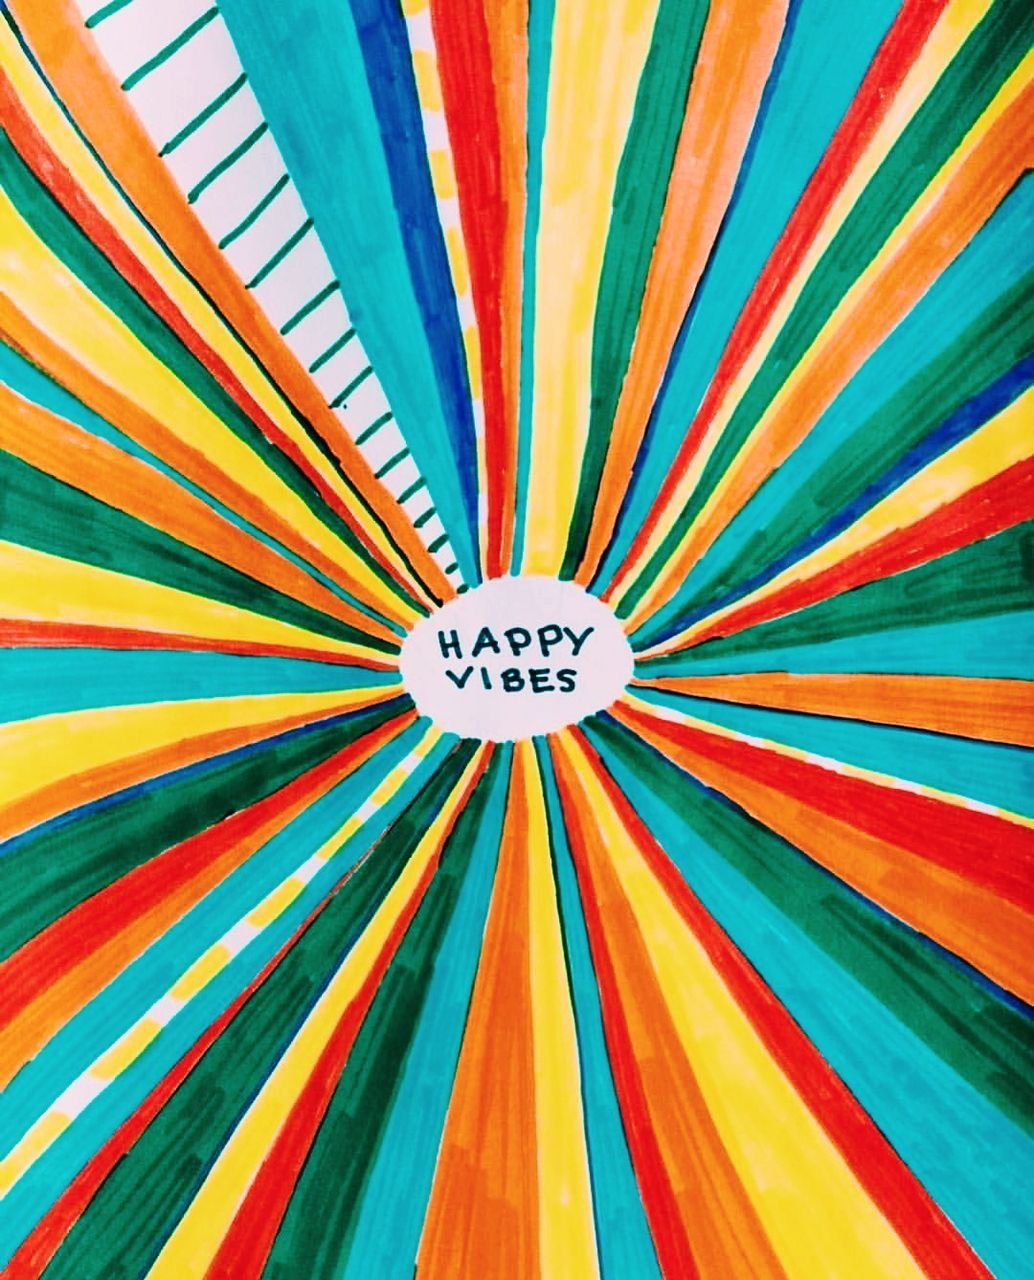 Colour Color Happy Wallpaper Happy Vibes Wall Collage